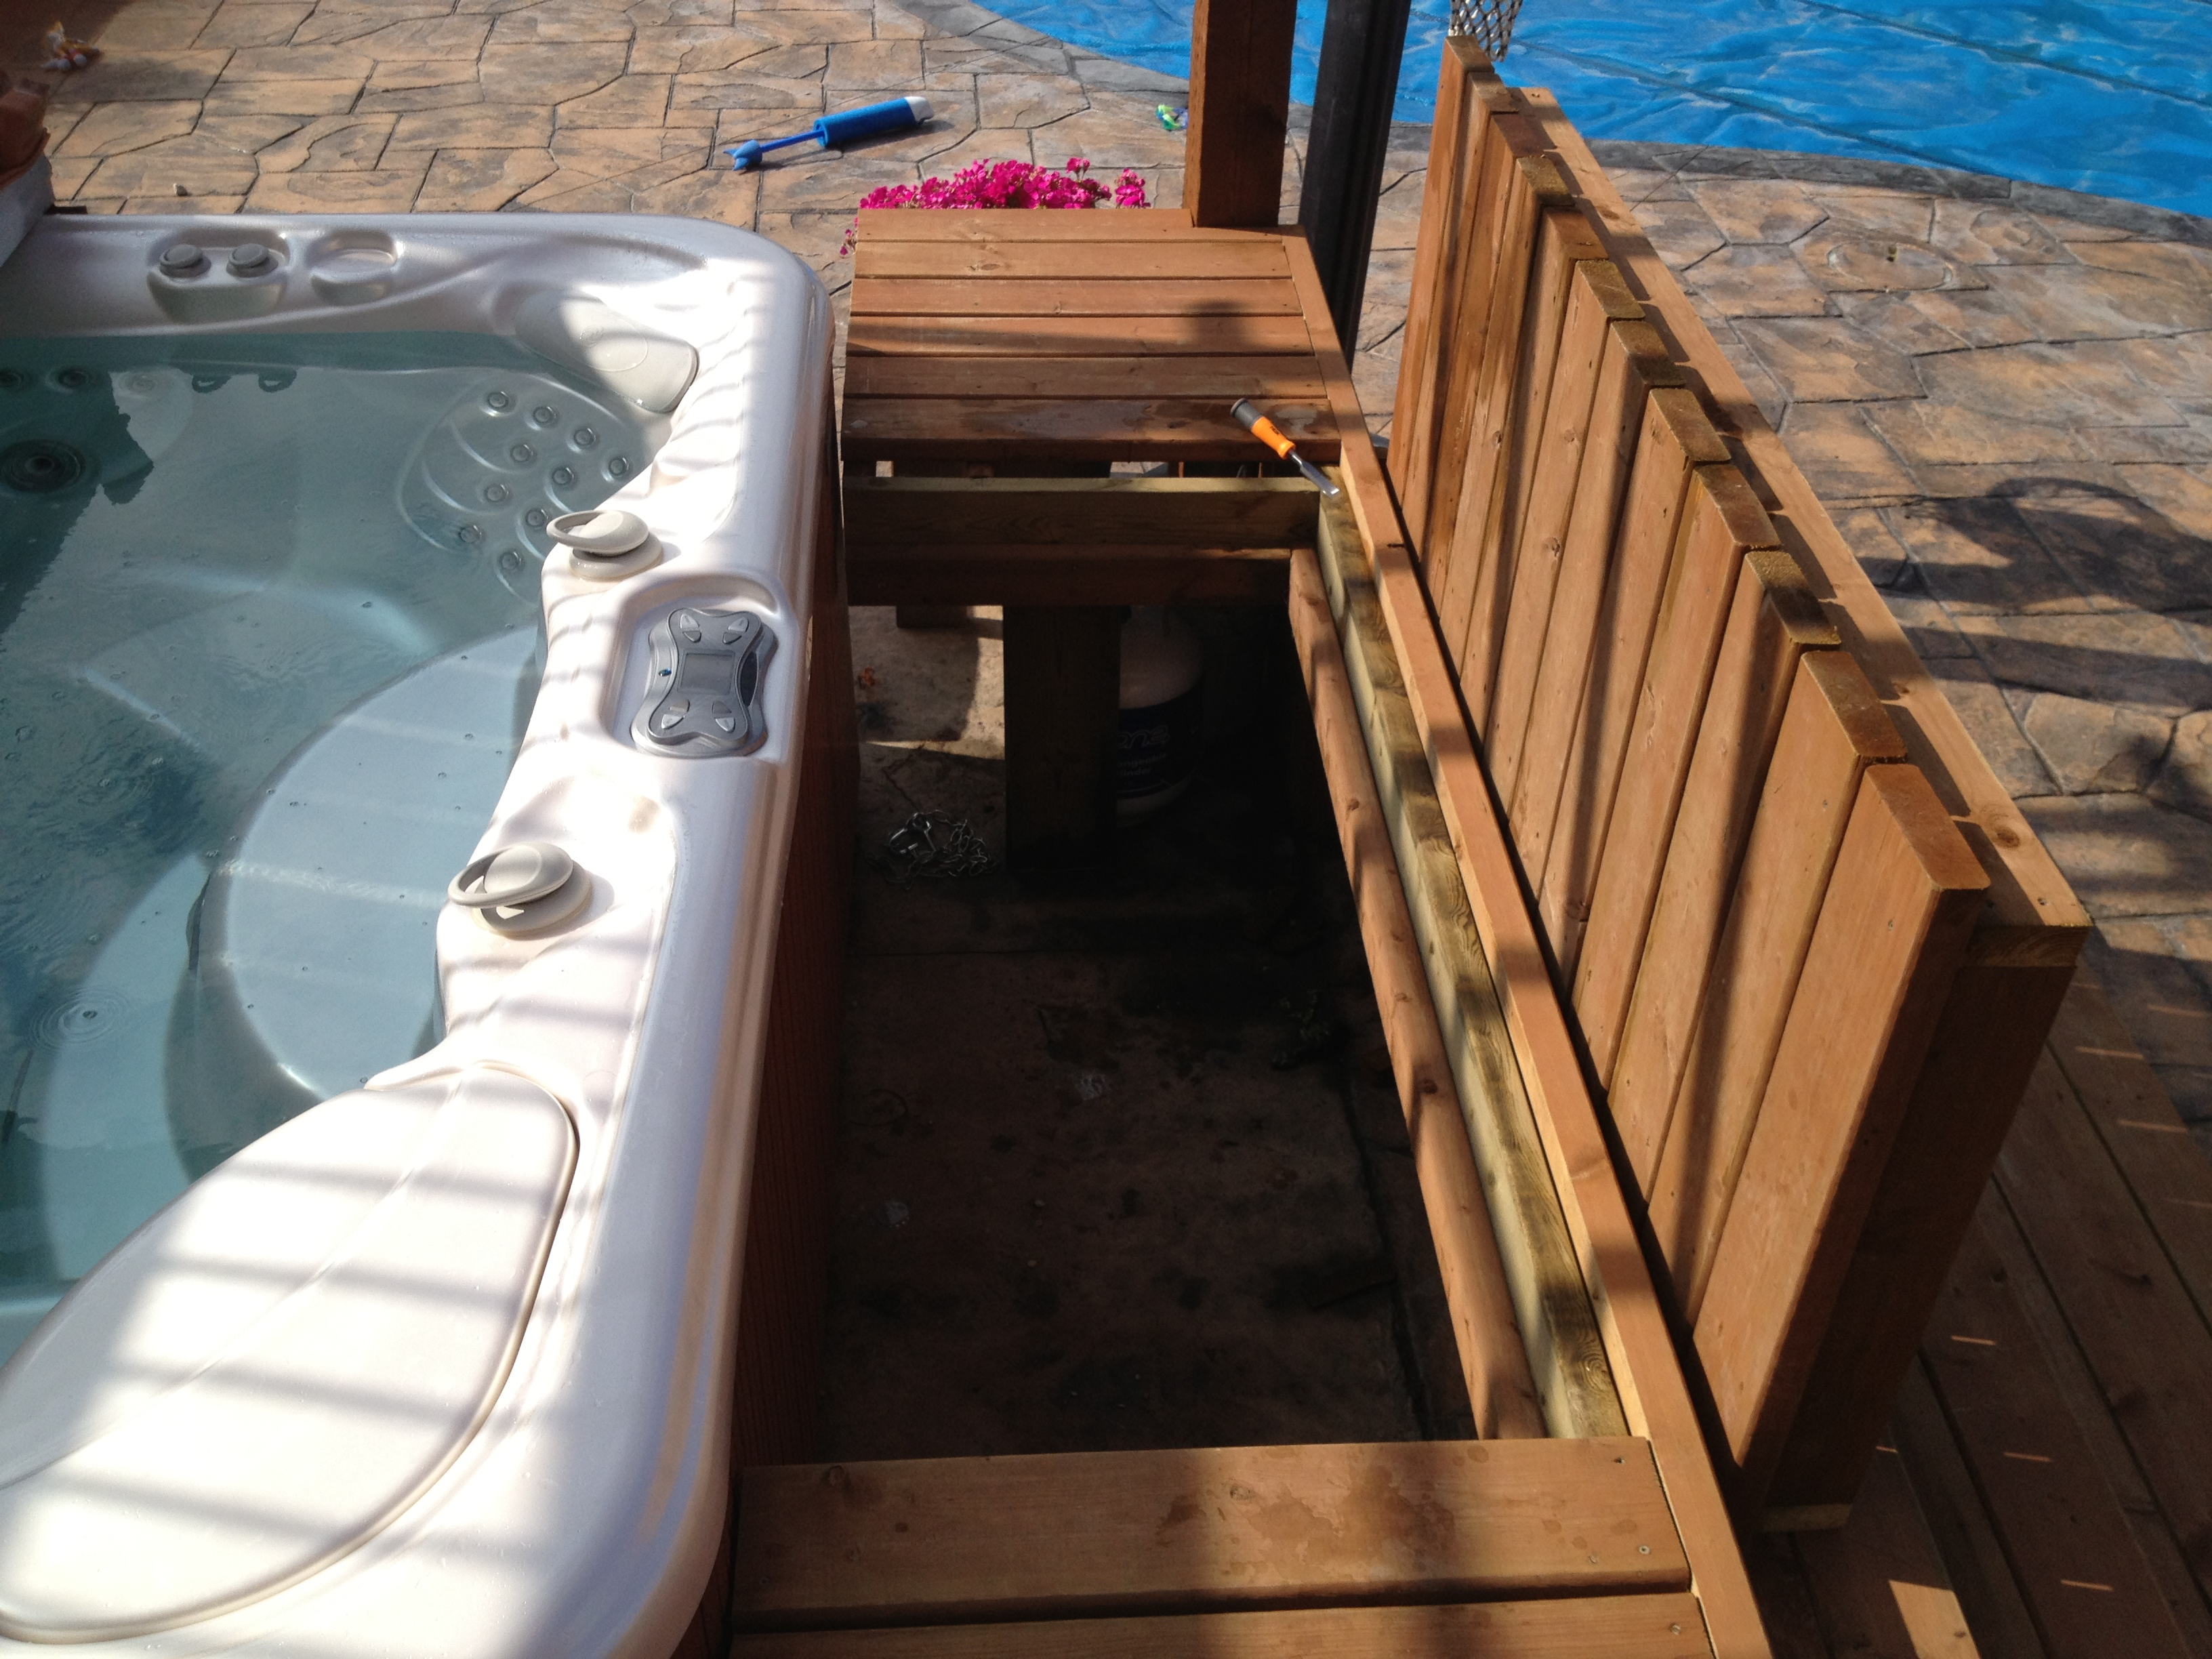 deck work hot kevin trex tub re composite fix around lemay hottub